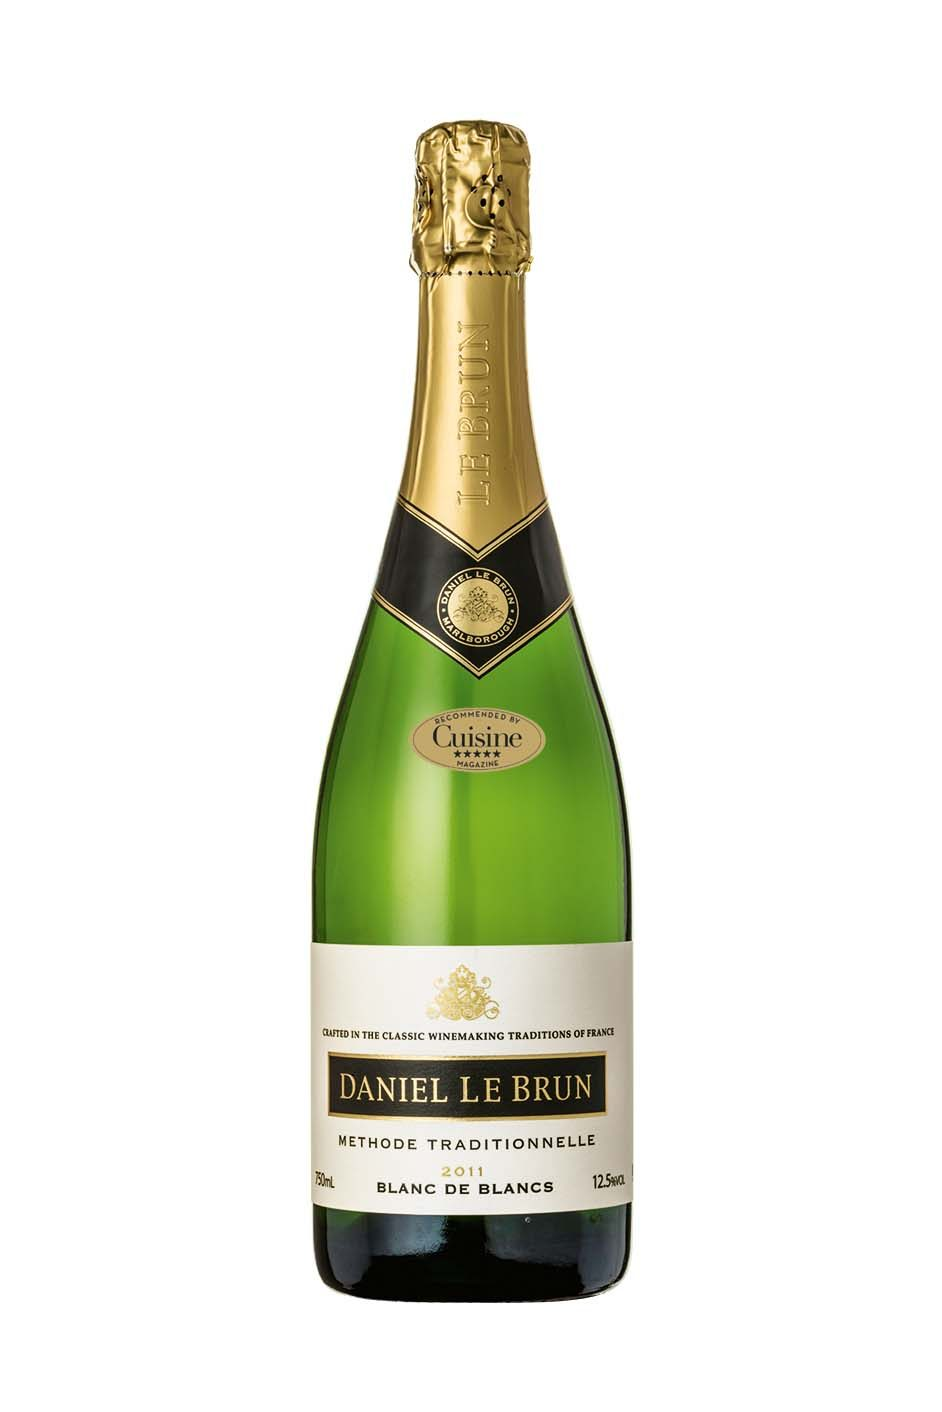 Daniel Le Brun Methode Traditionnelle Blanc de Blancs